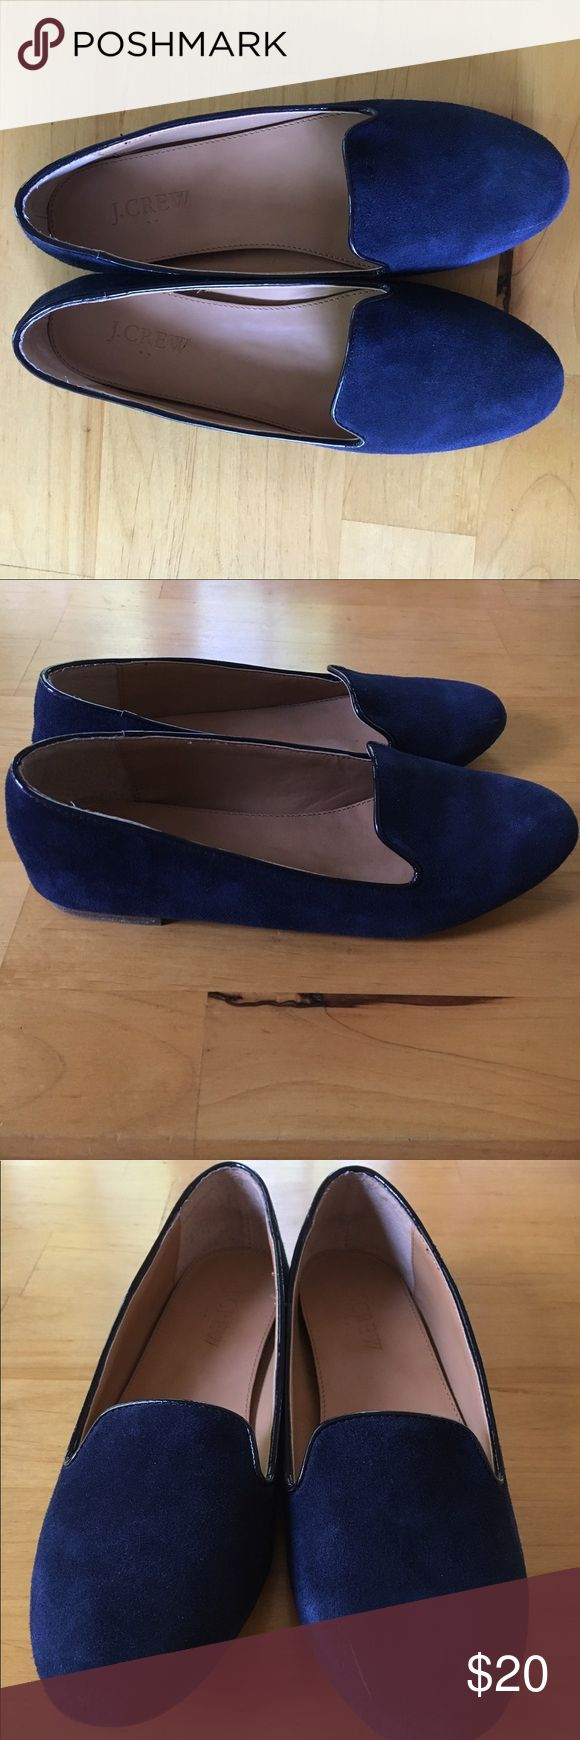 J. Crew Navy Suede Loafer Flats These are a pair of pre-owned J.Crew navy suede loafers in great condition. They have only been worn twice. Notice there is some slight scuffing on the suede near the toe. Let me know if you have any questions :) J. Crew Shoes Flats & Loafers